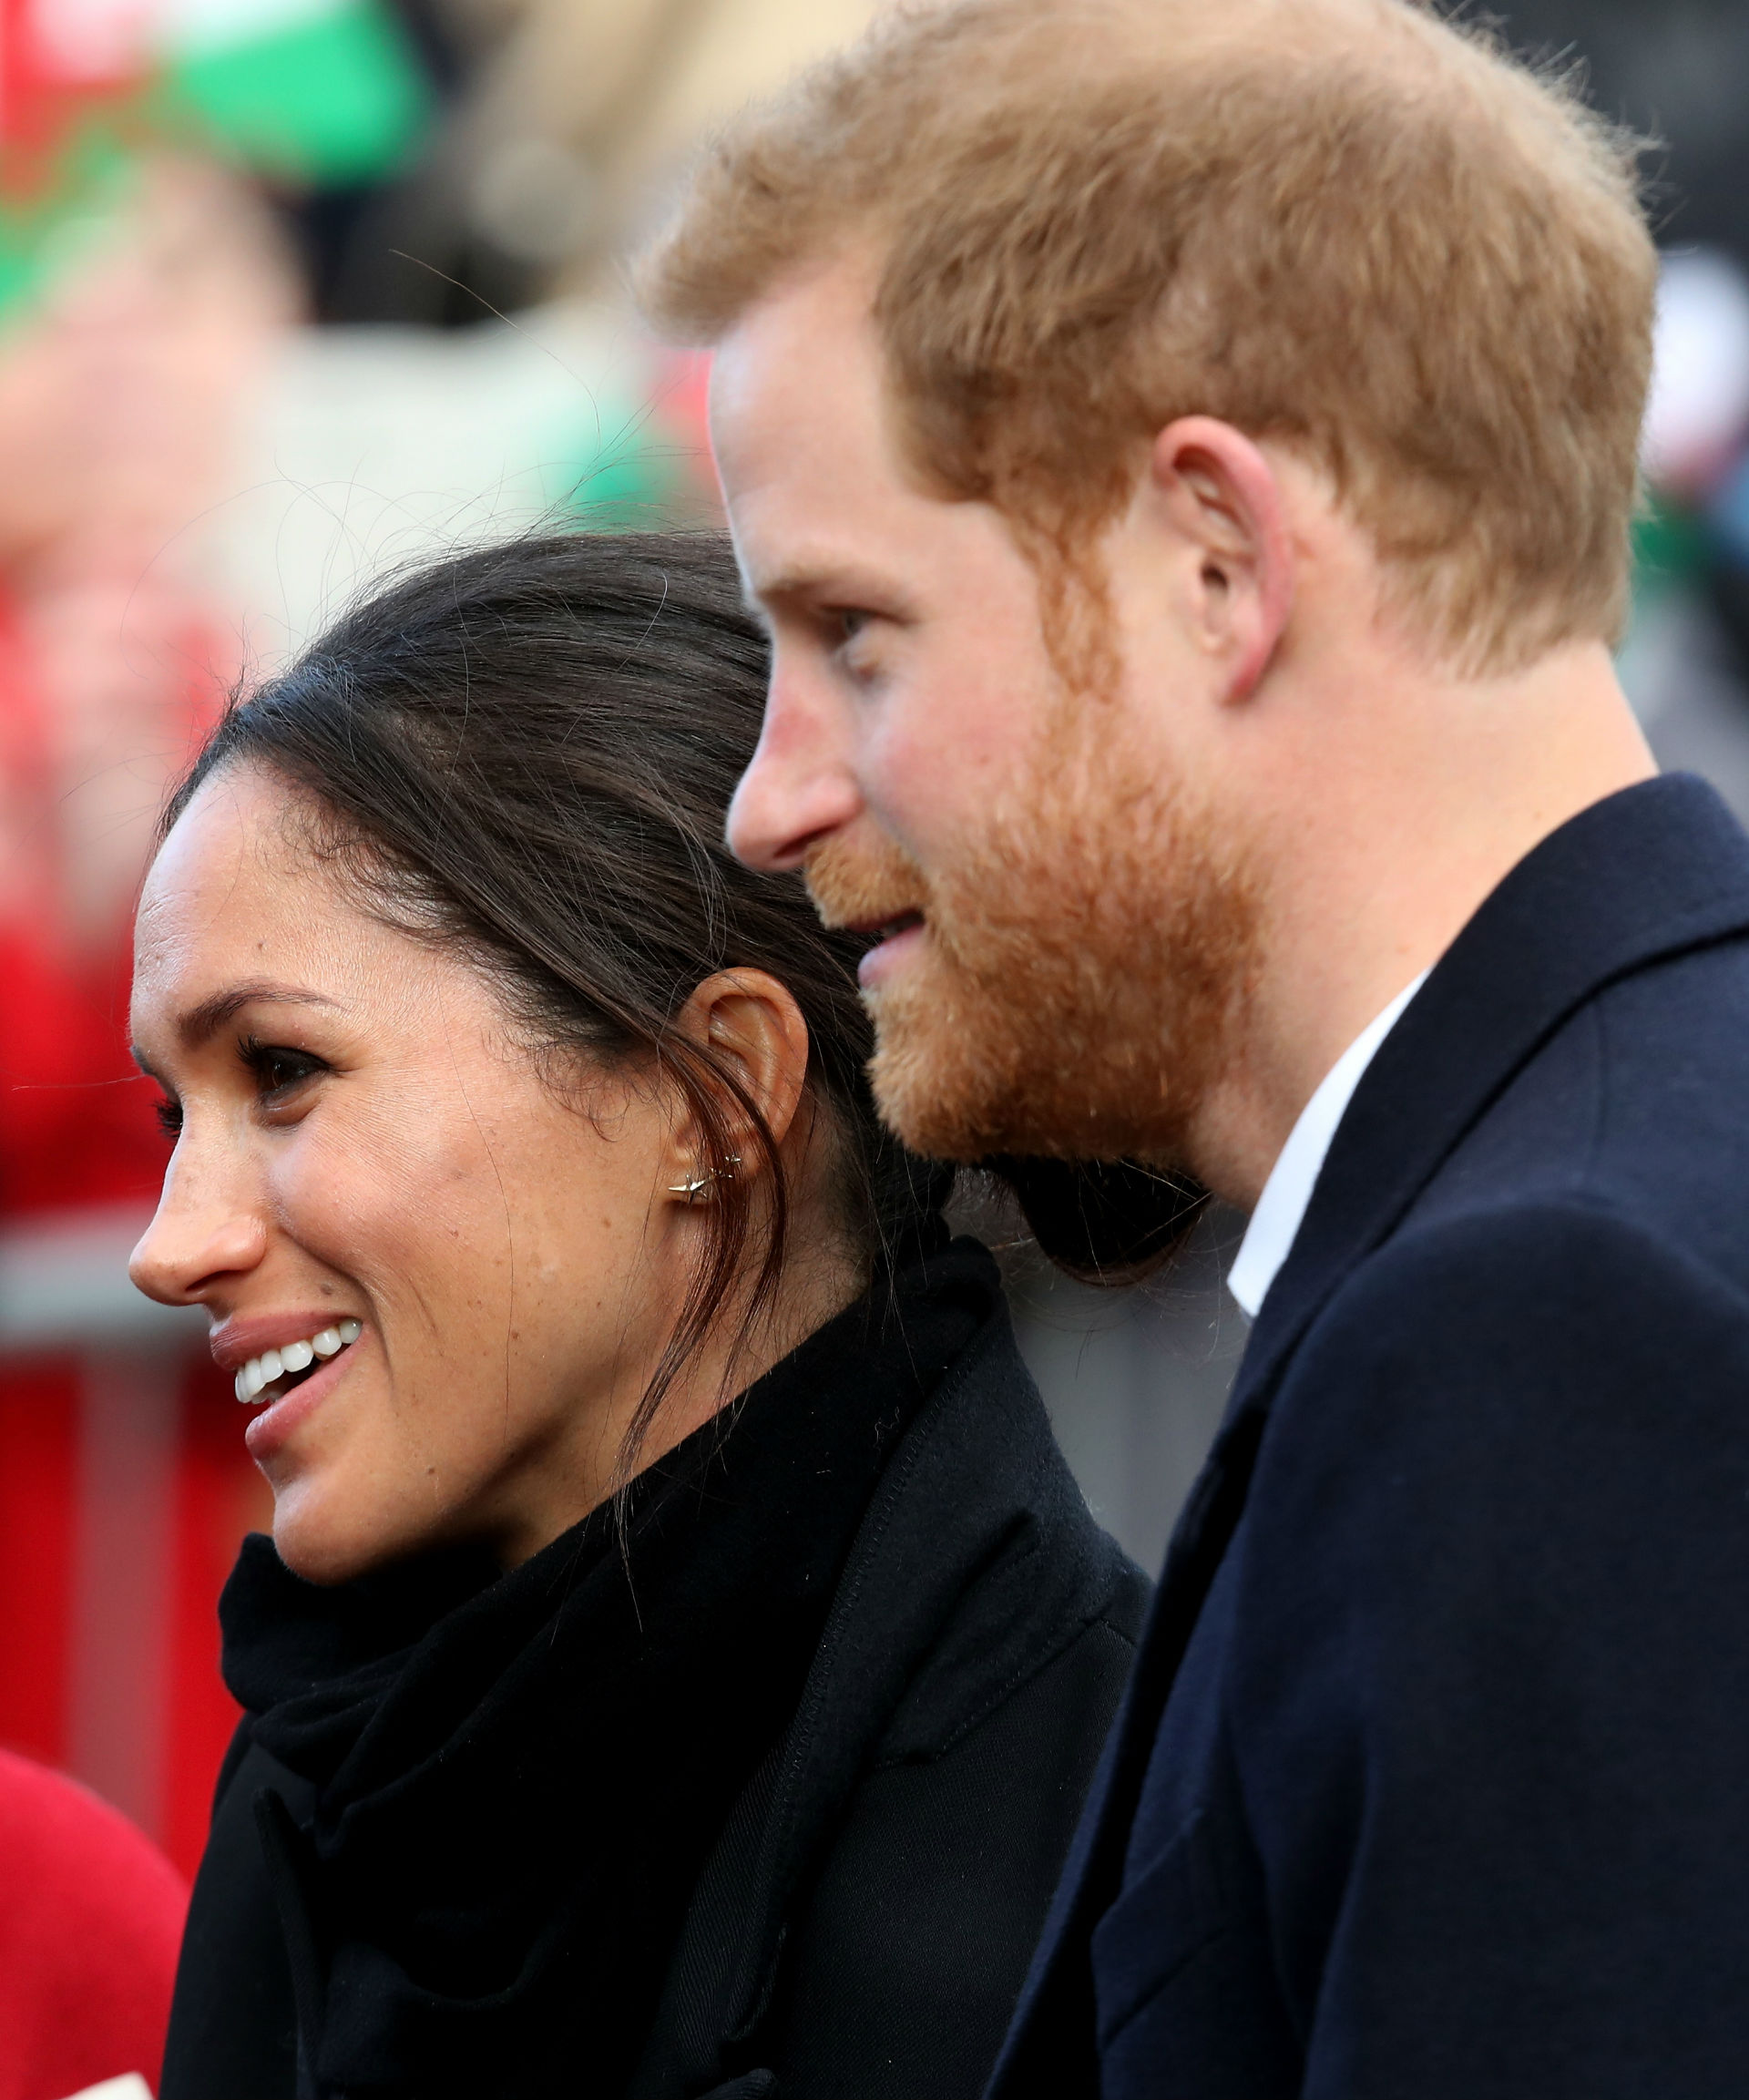 Meghan and Harry delight Cardiff crowds